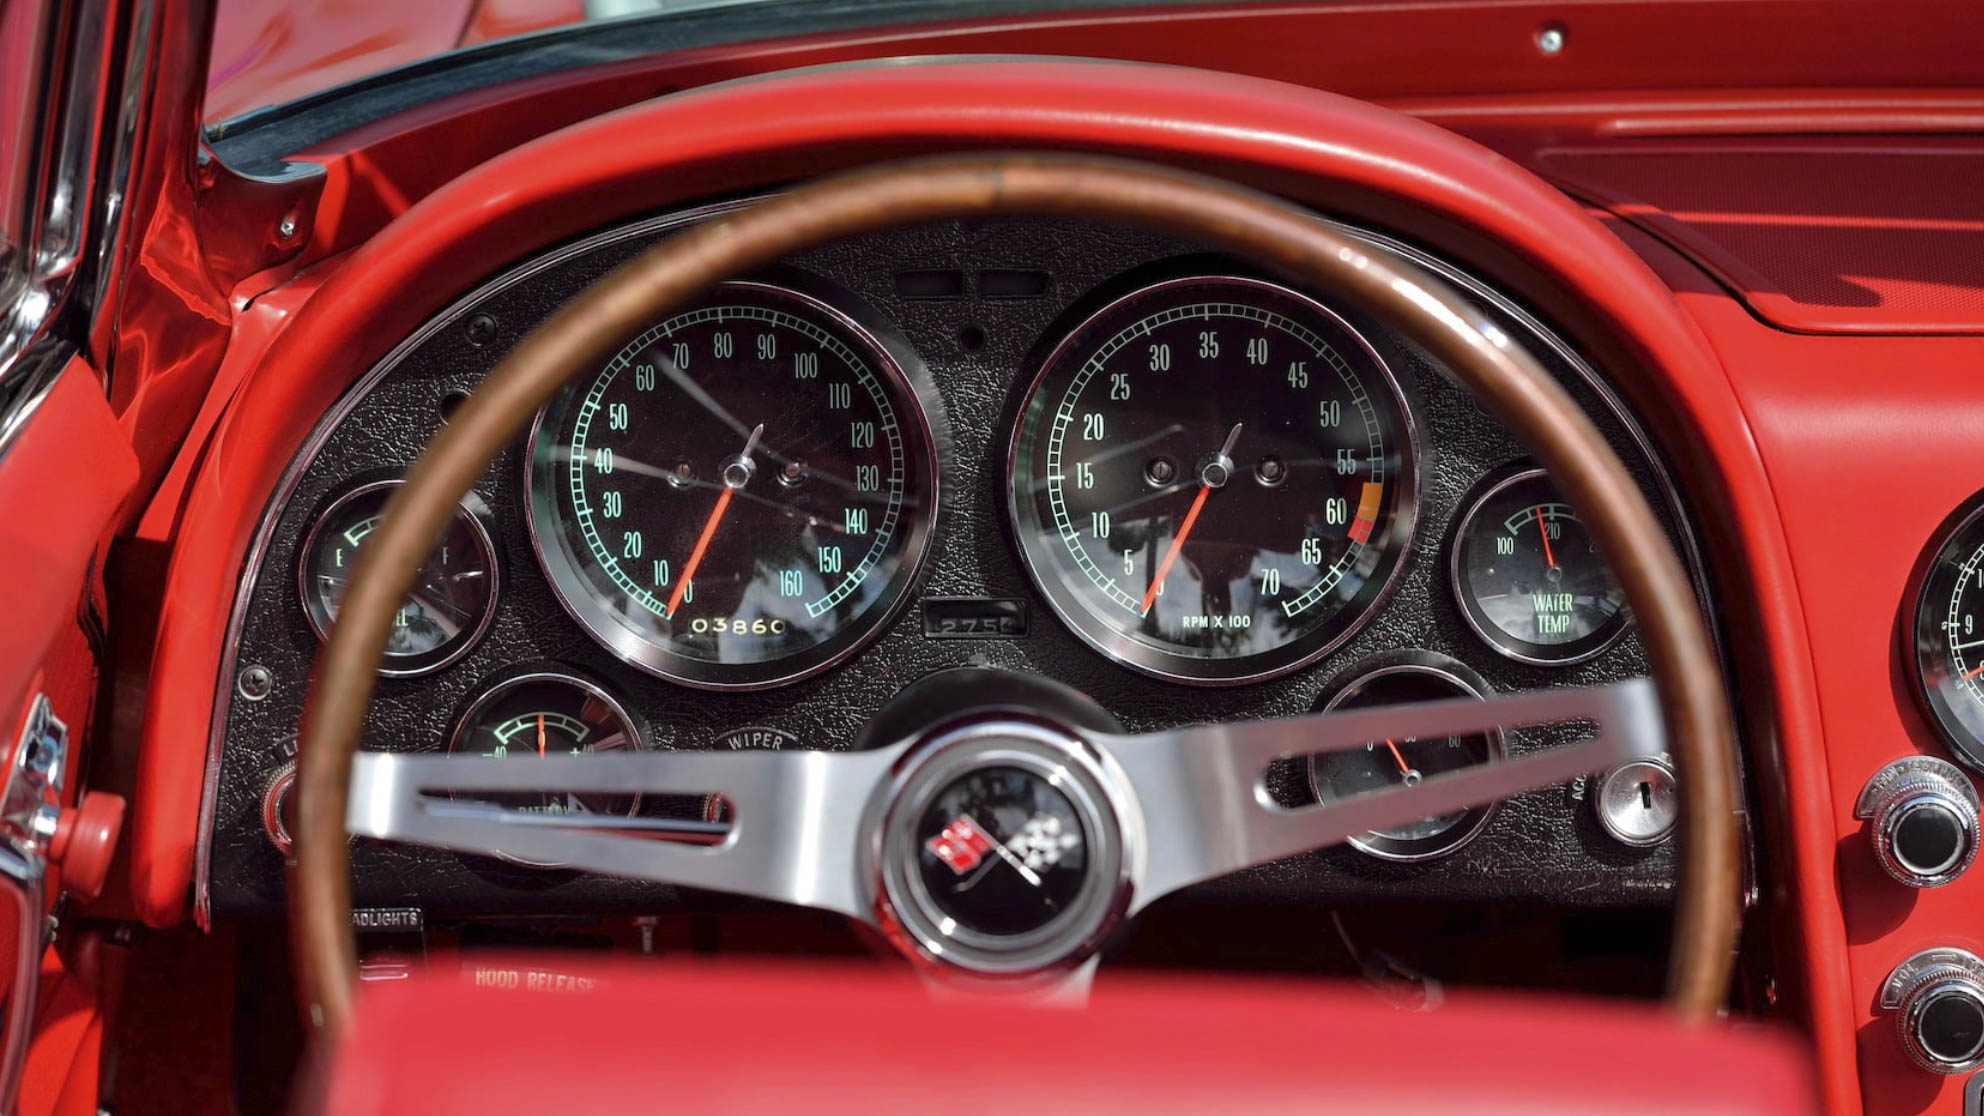 The 5 best dashboards of the muscle-car era thumbnail